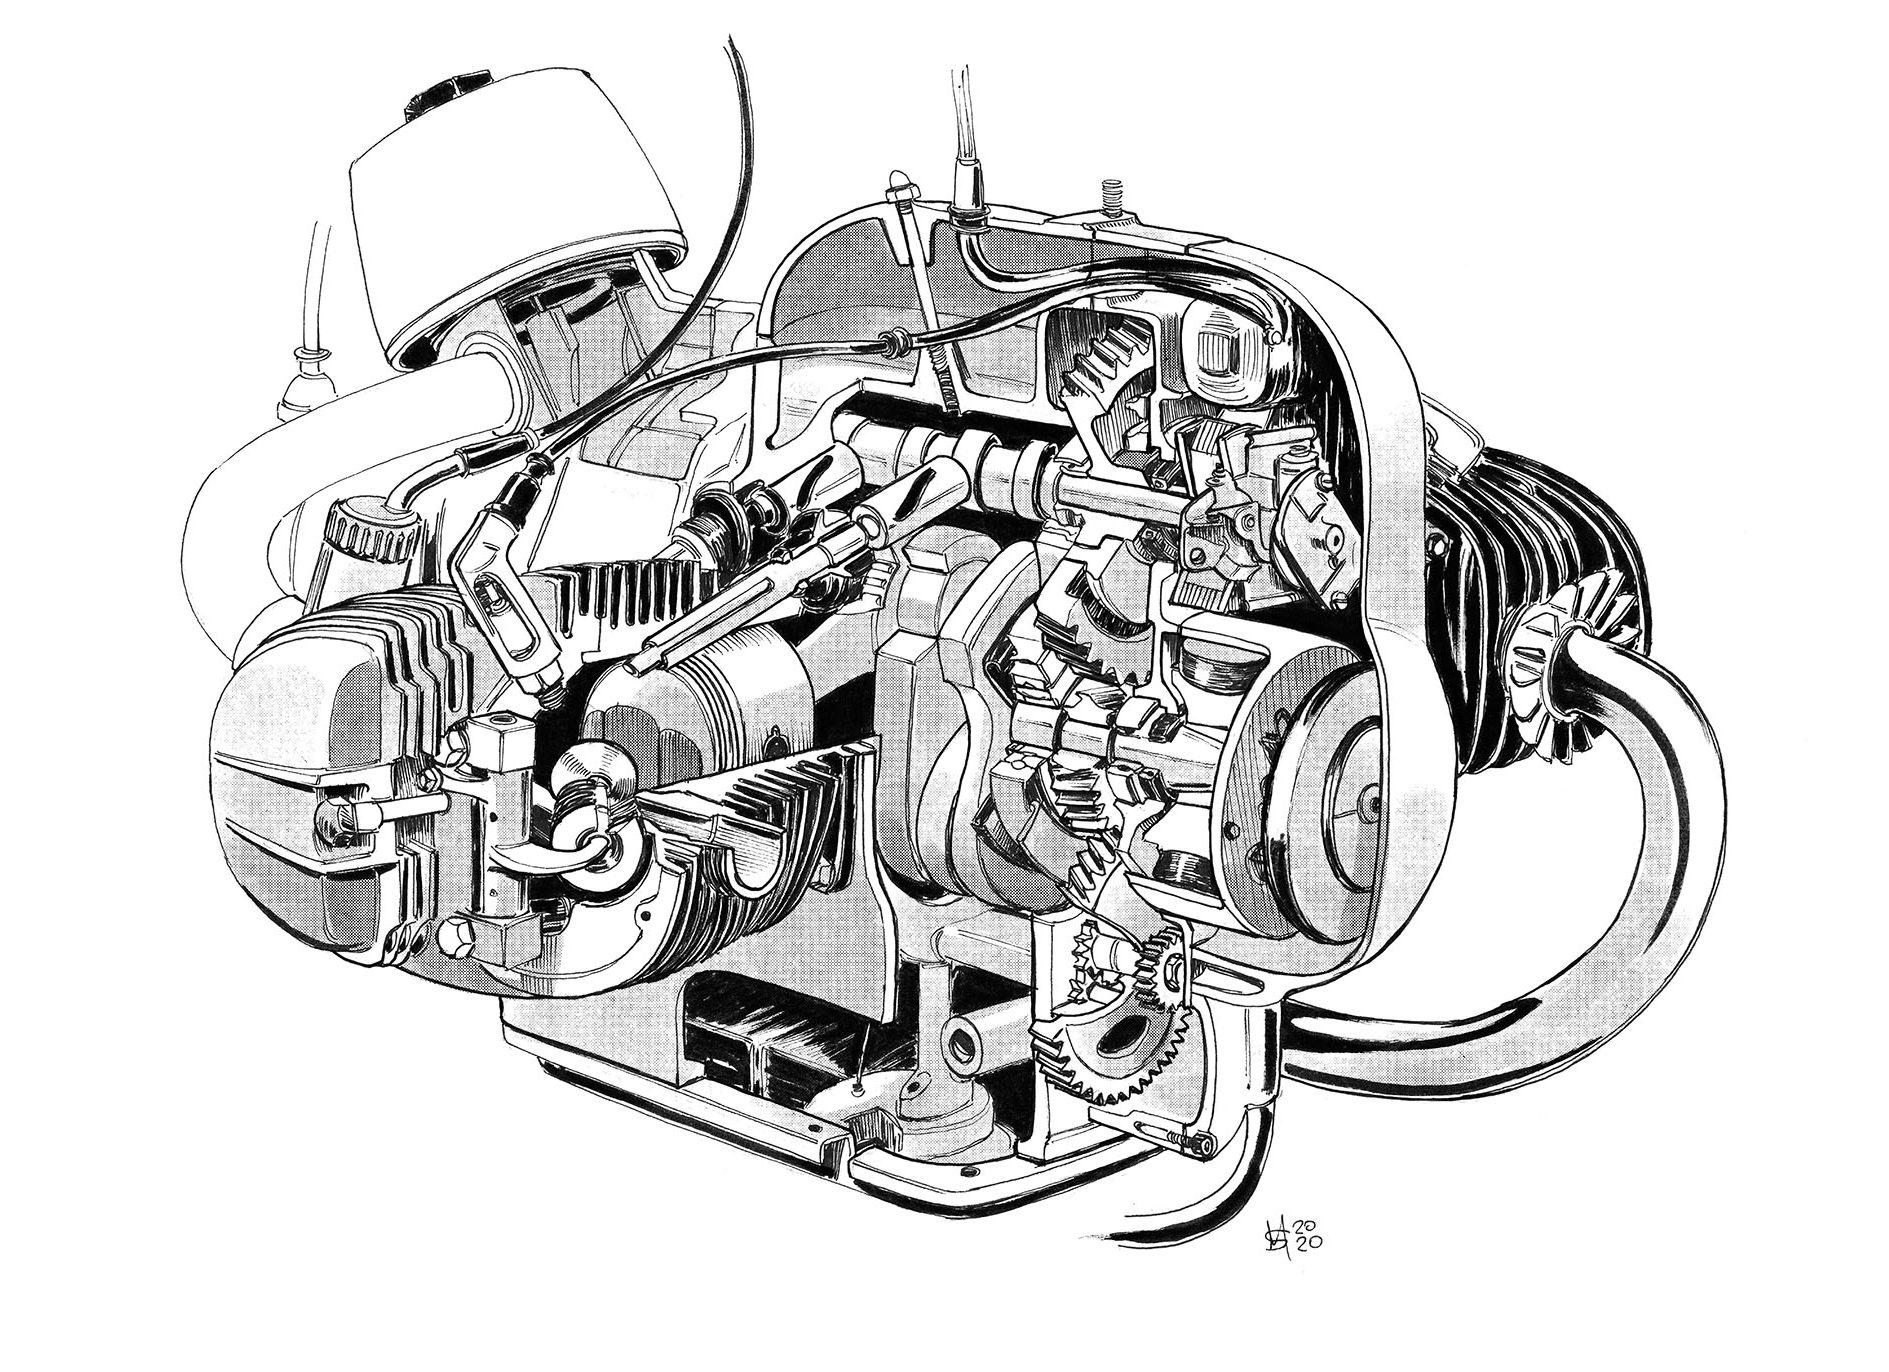 BMW R69S illustration engine